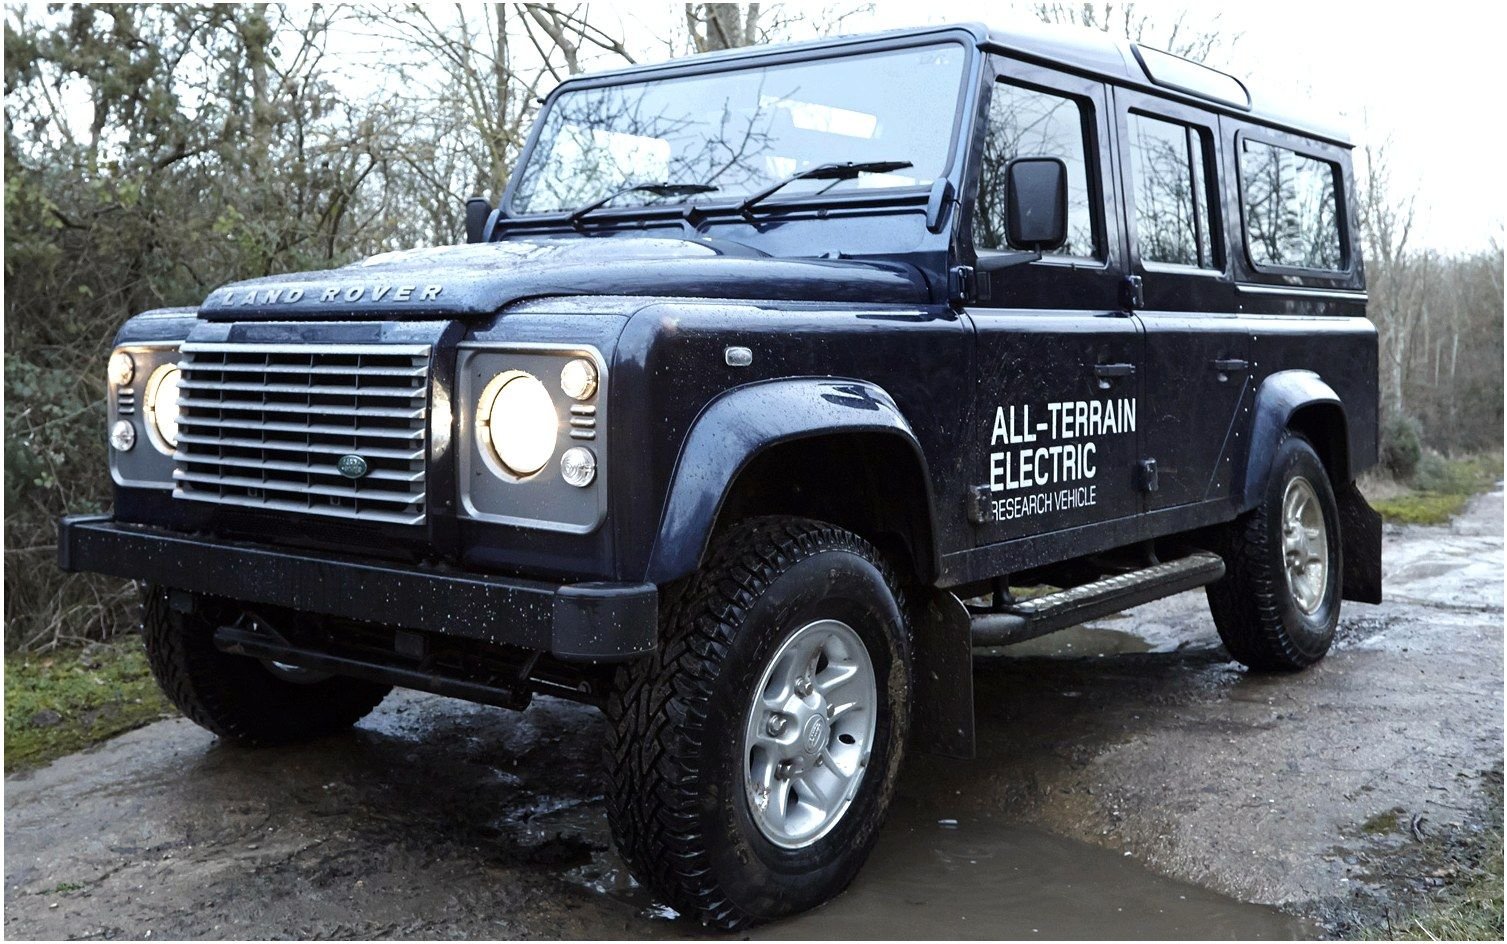 36+ Electric land rover defender ideas in 2021